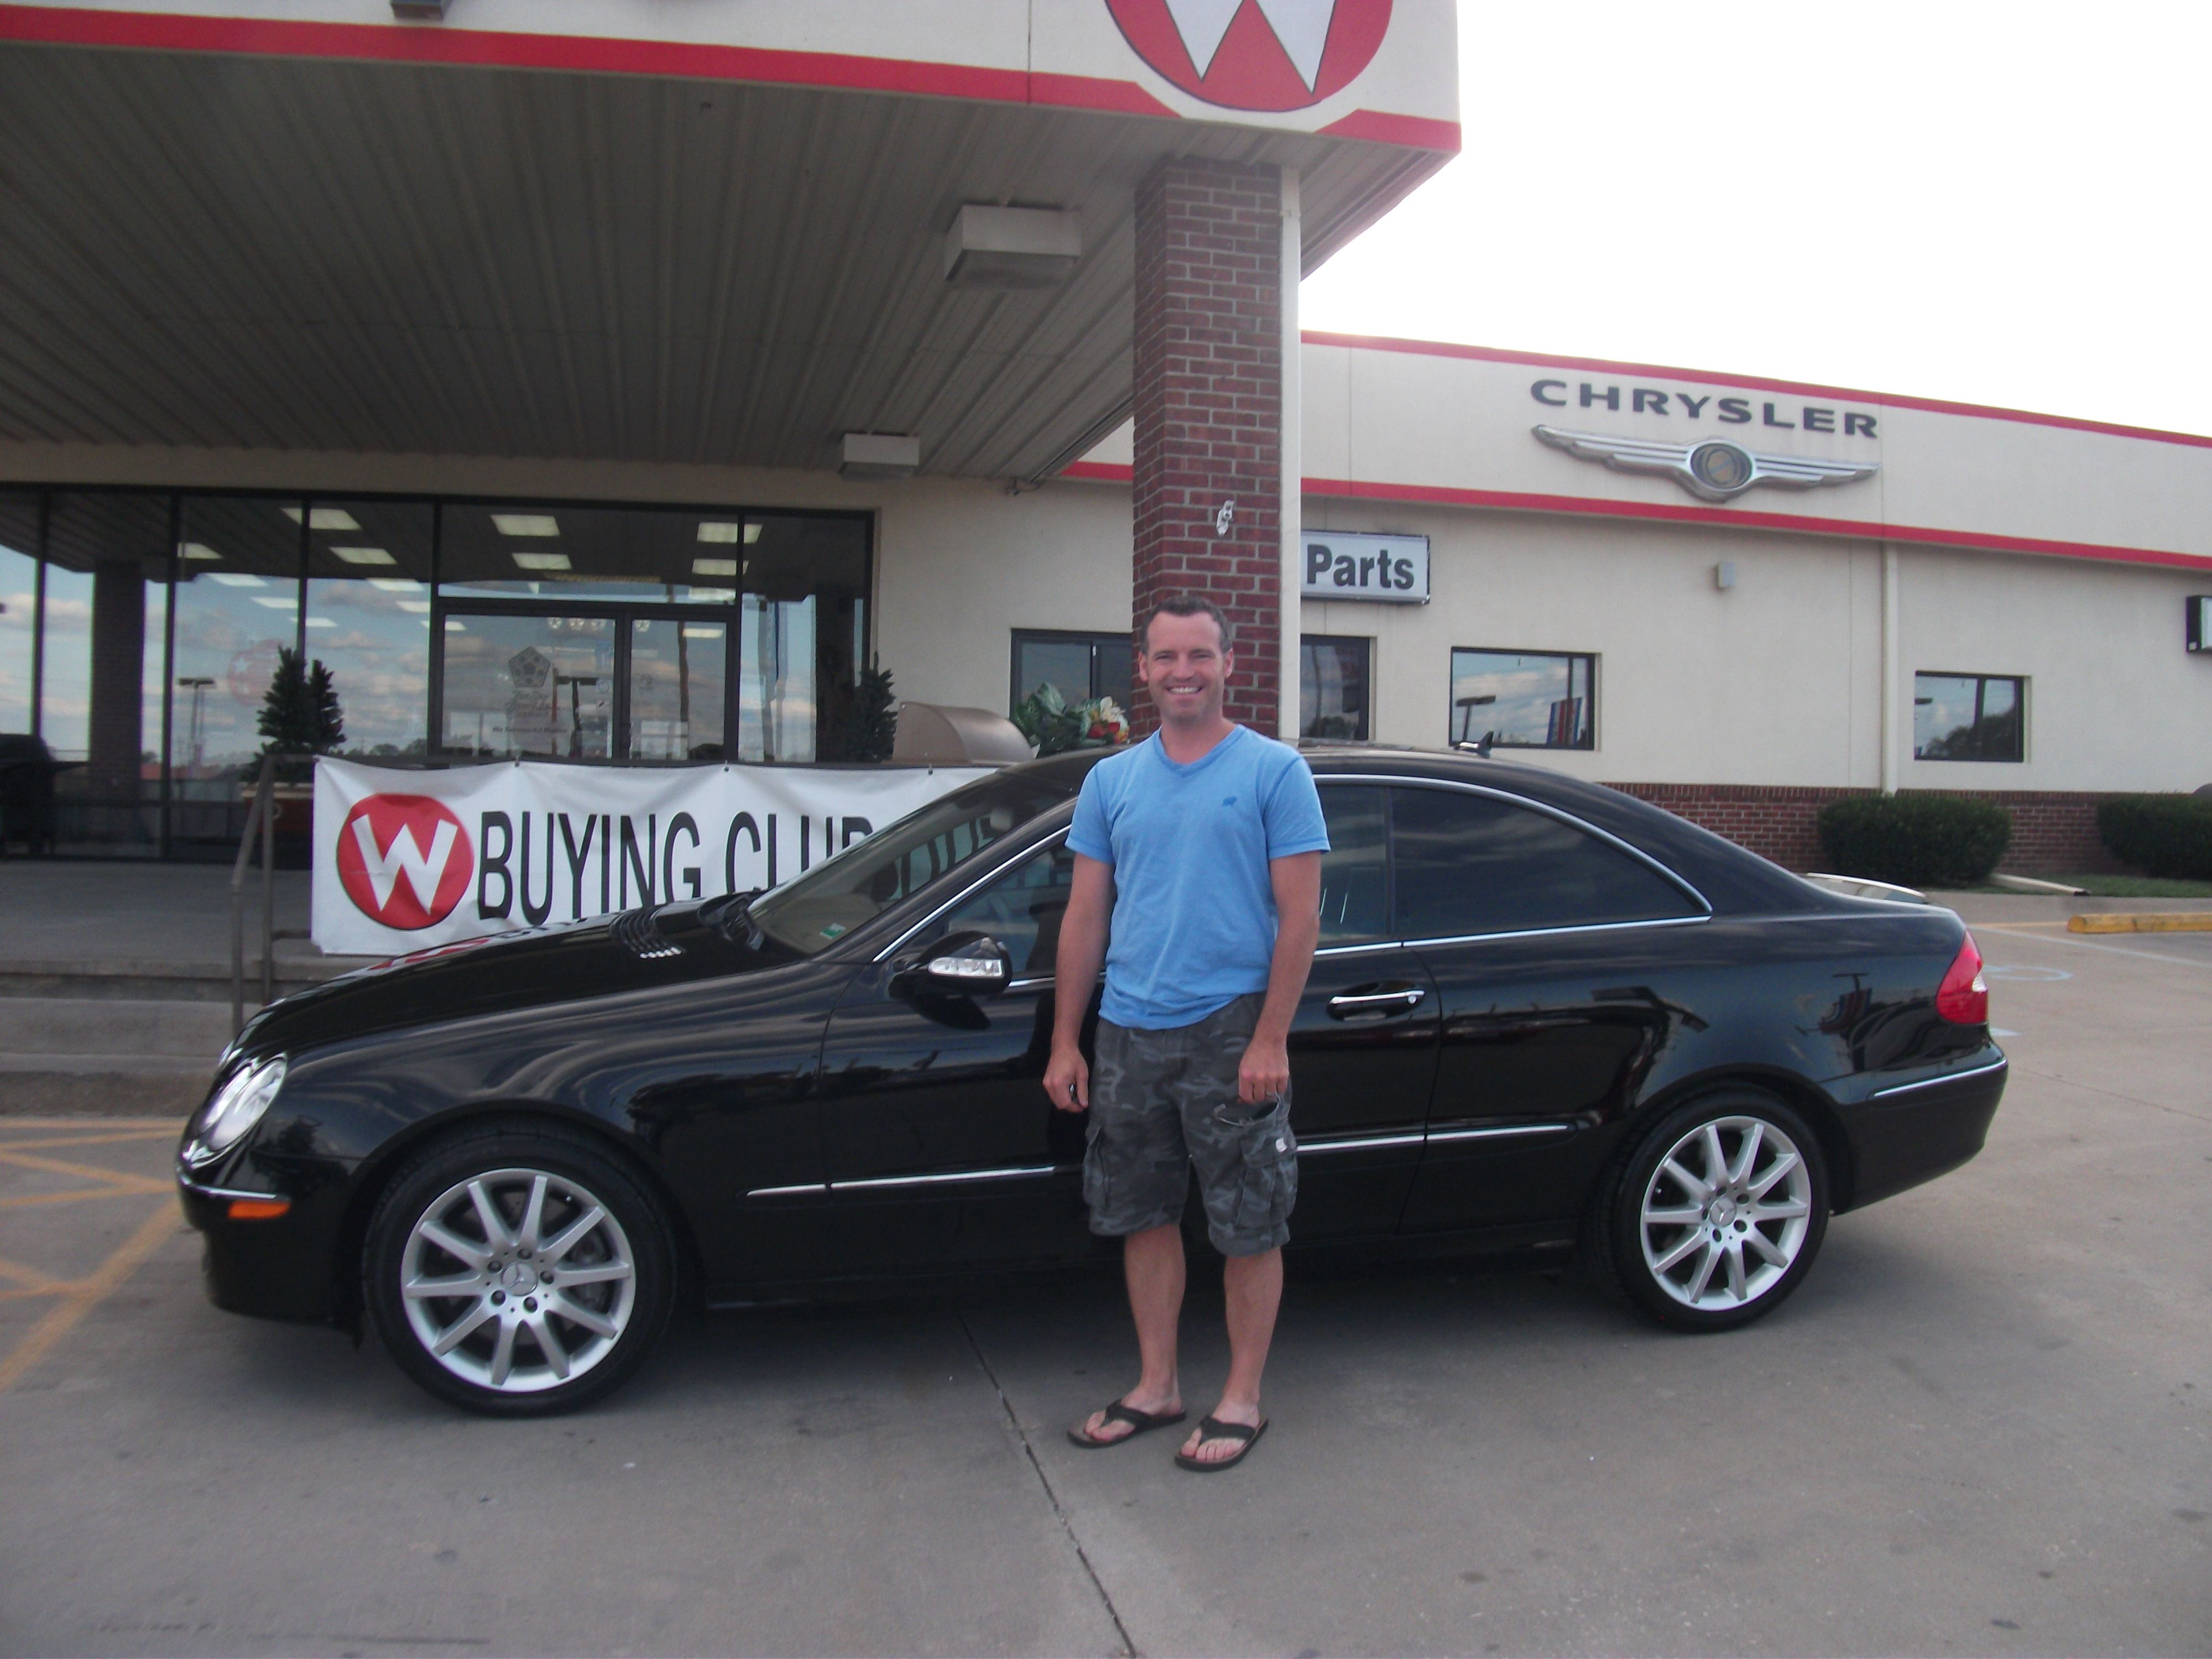 Robert Nab From Overland Park Kansas Purchased This 2007 Mercedes Benz Clk 350 And Wrote 5 Stars Neva And Polly Jeep Dealer Automotive Group Trenton